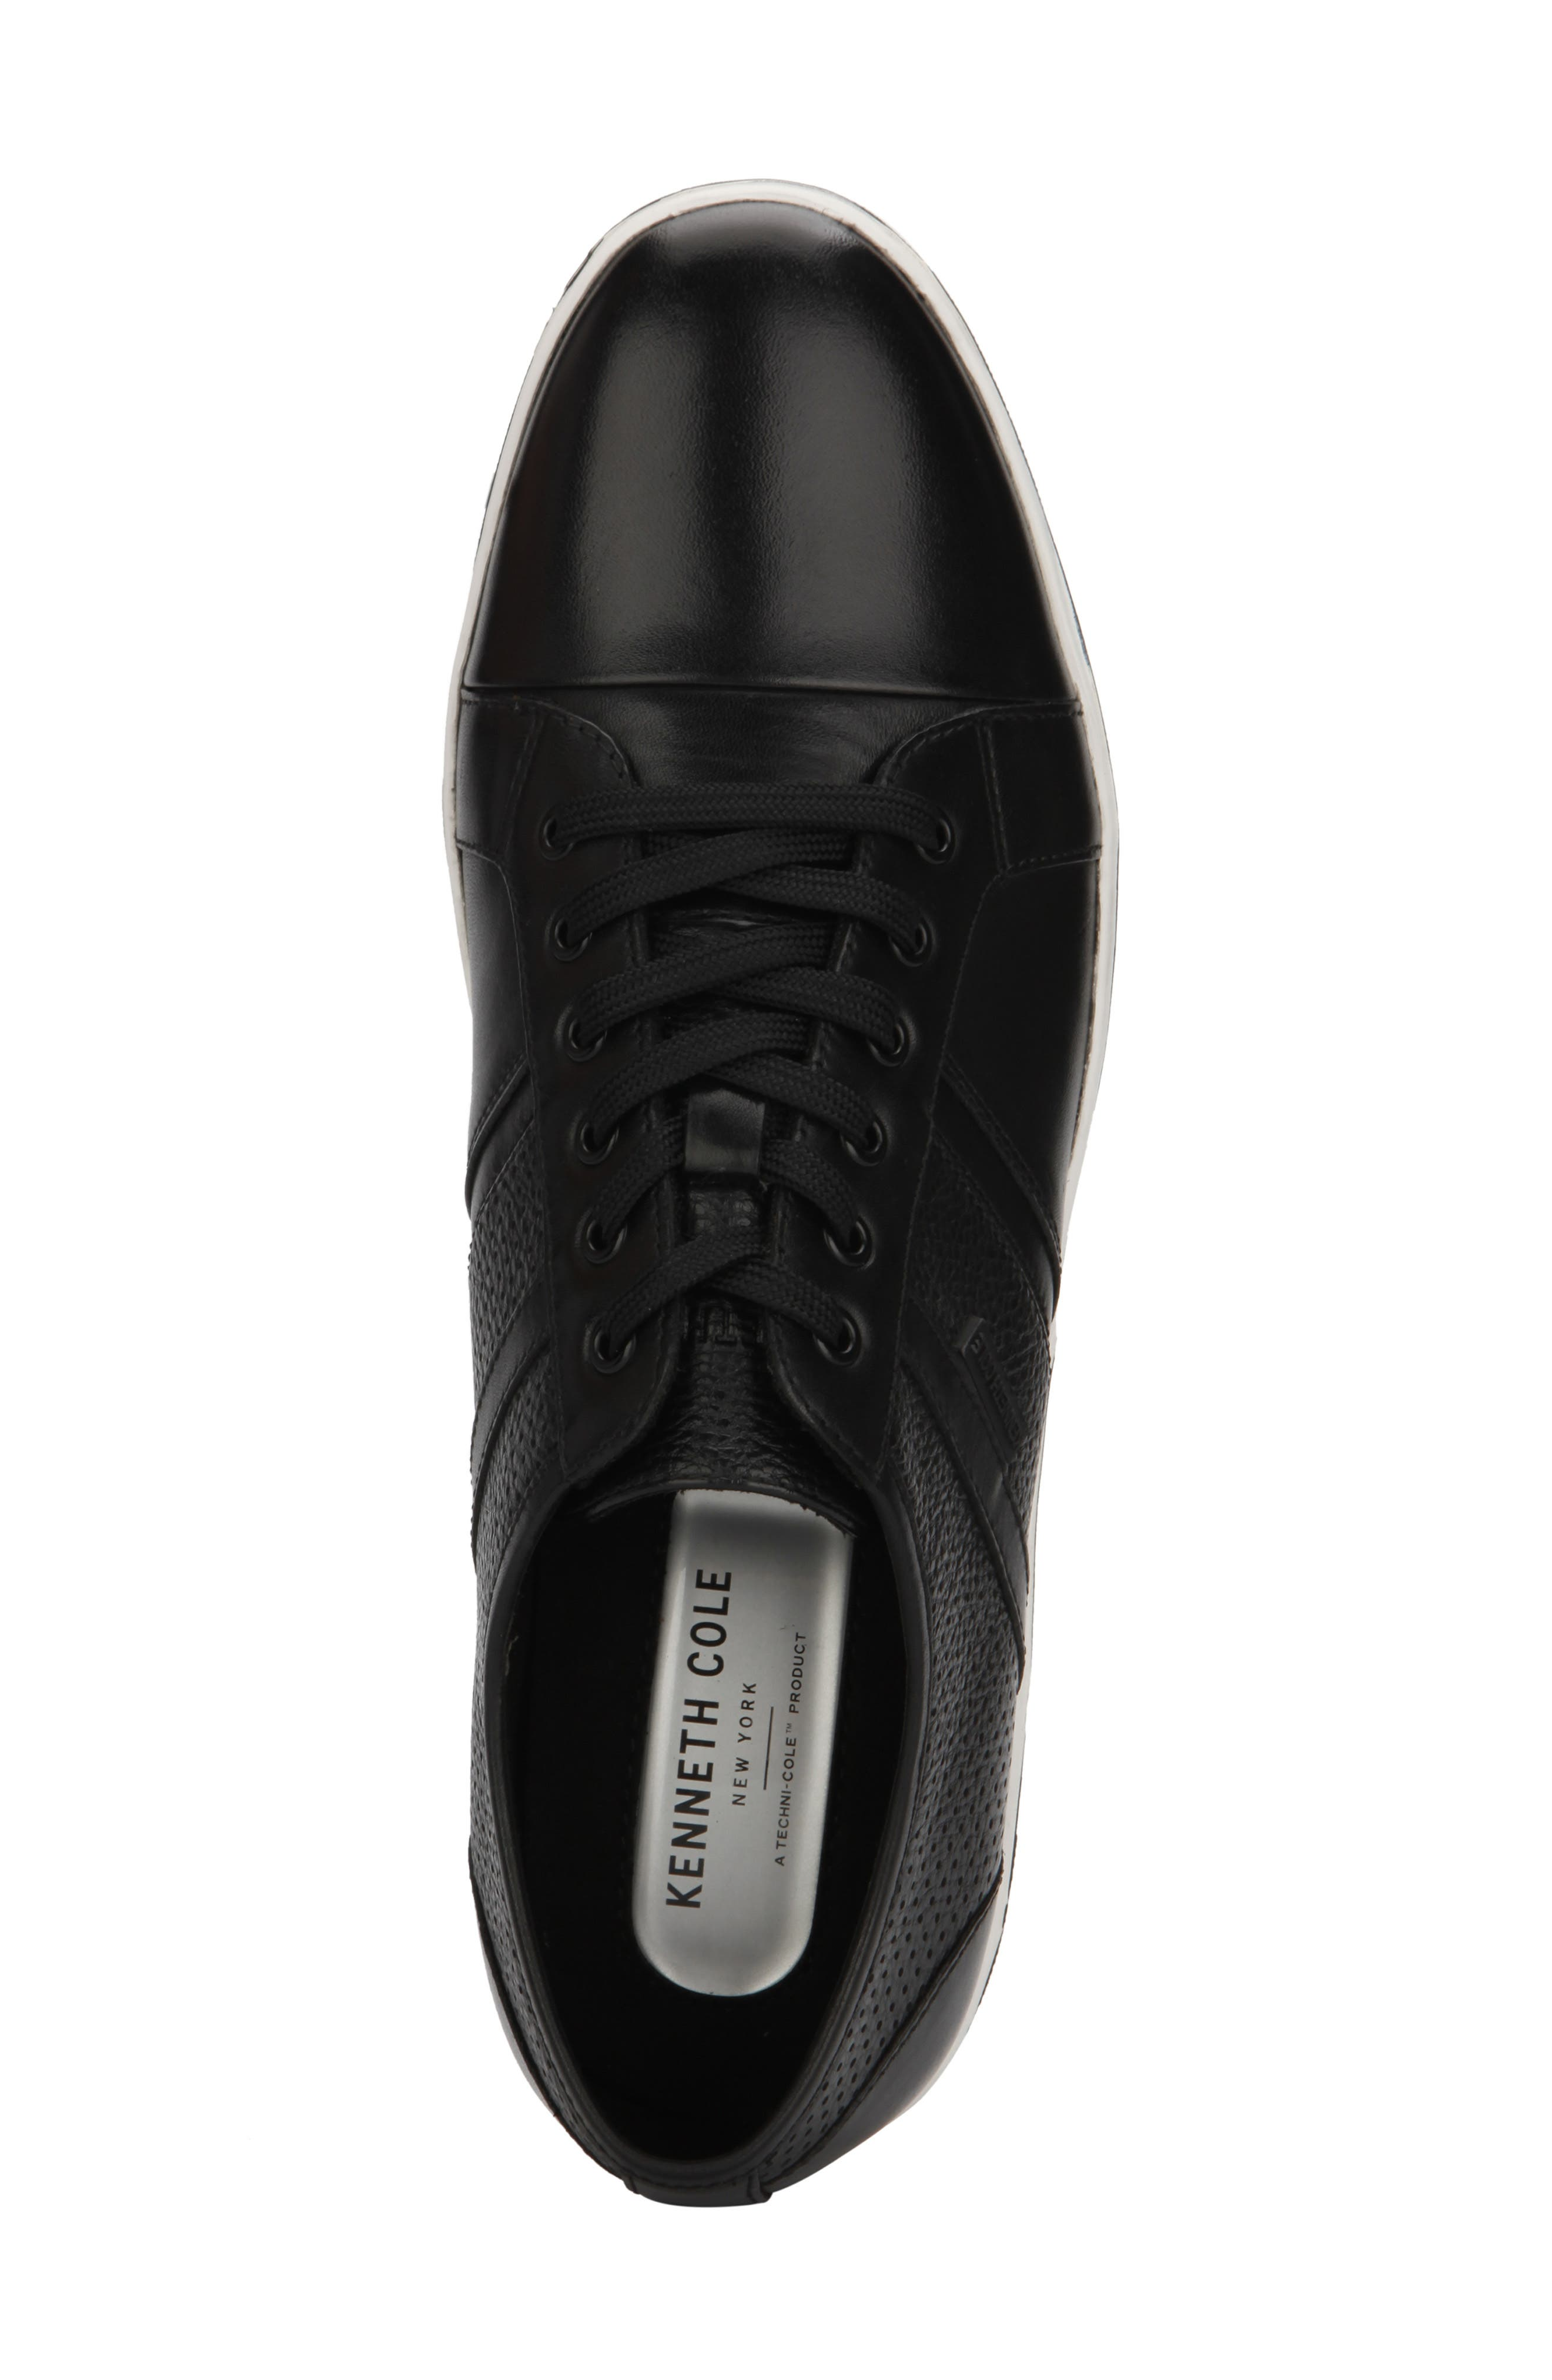 KENNETH COLE NEW YORK, Initial Step Sneaker, Alternate thumbnail 3, color, BLACK LEATHER